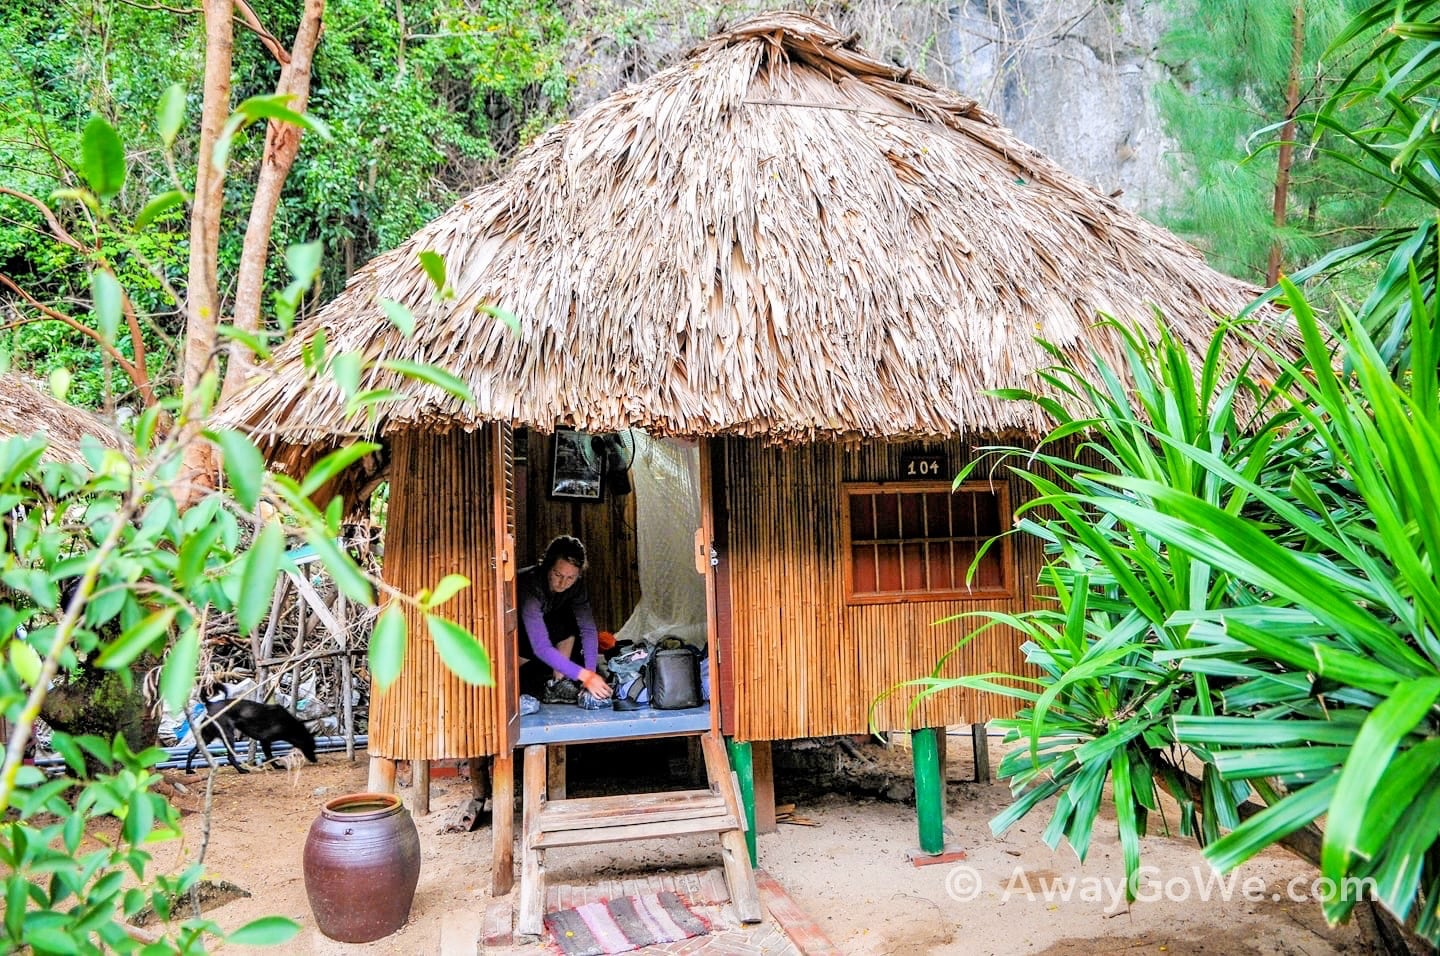 Stilted thatch-roof bungalow surrounded by jungle